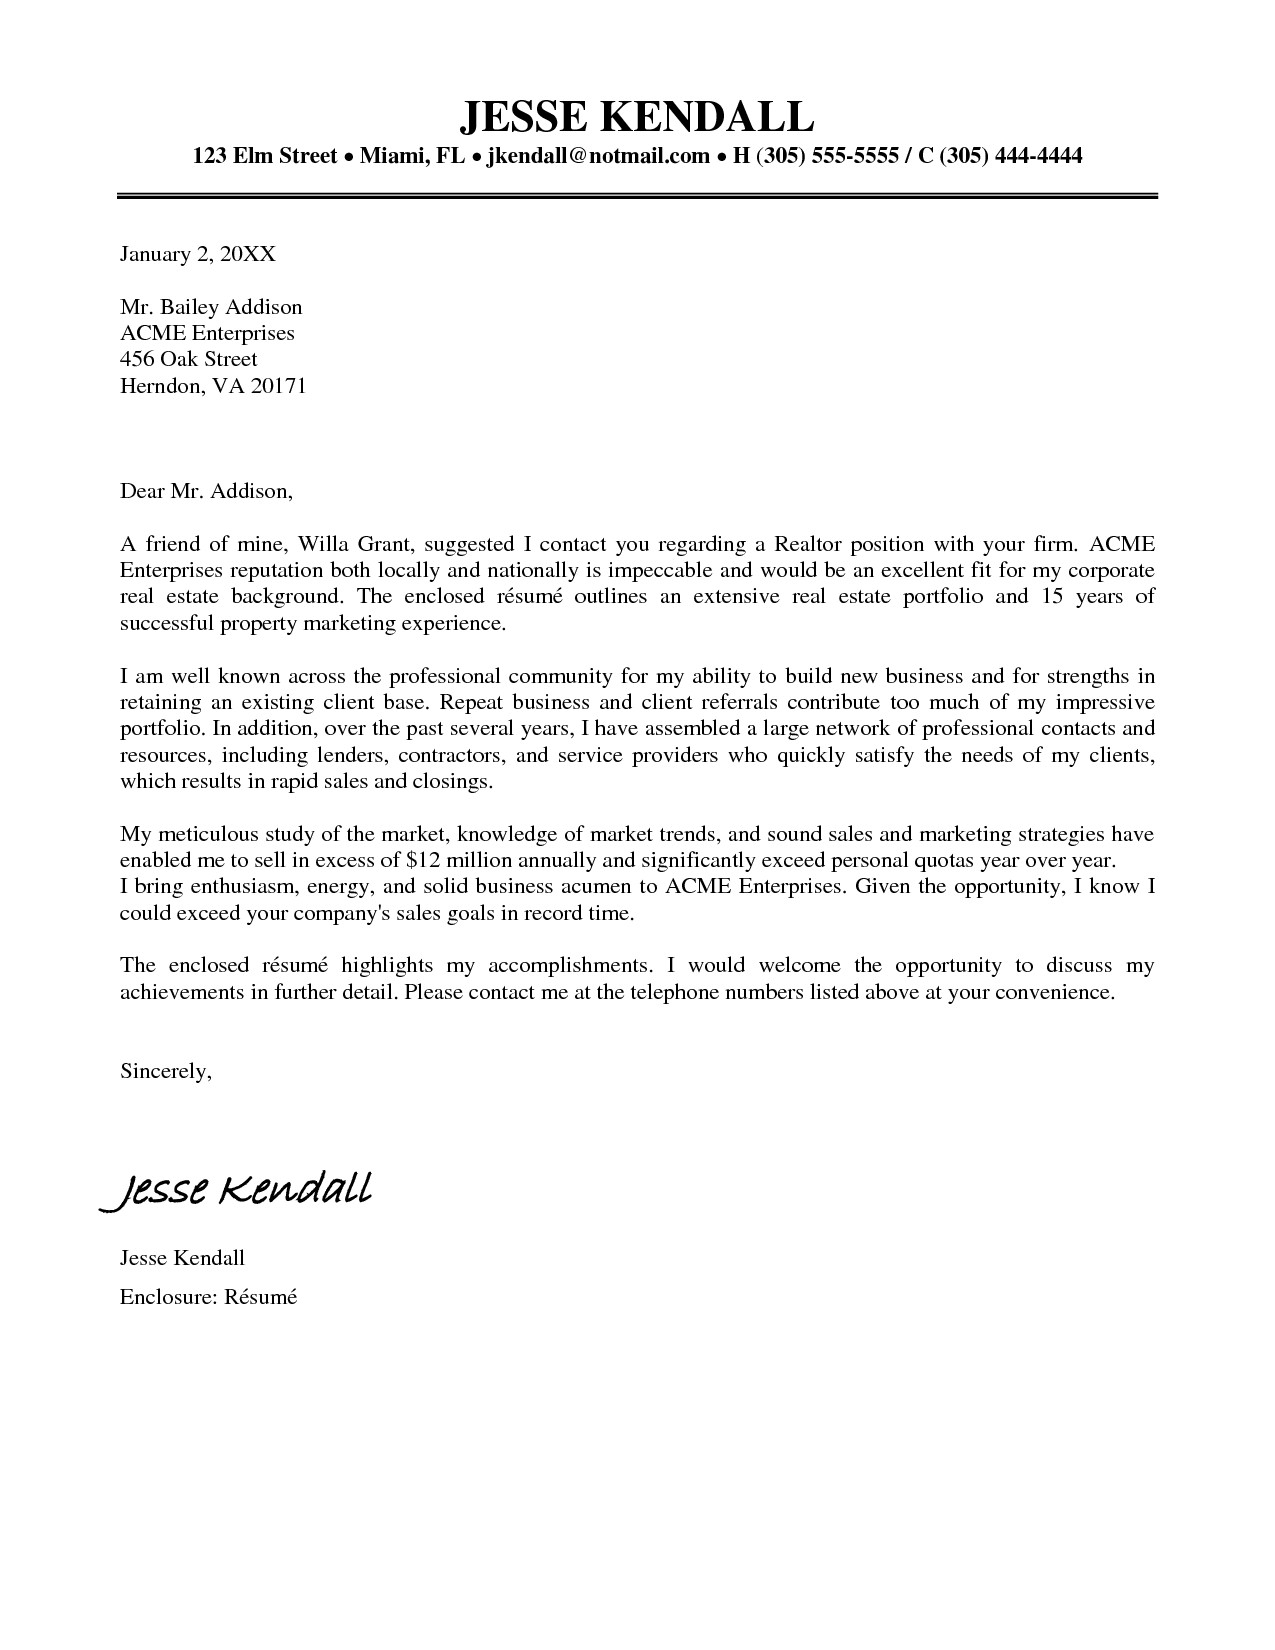 Real Estate Introduction Letter Template - Save Cover Letter Sample for Real Estate Job